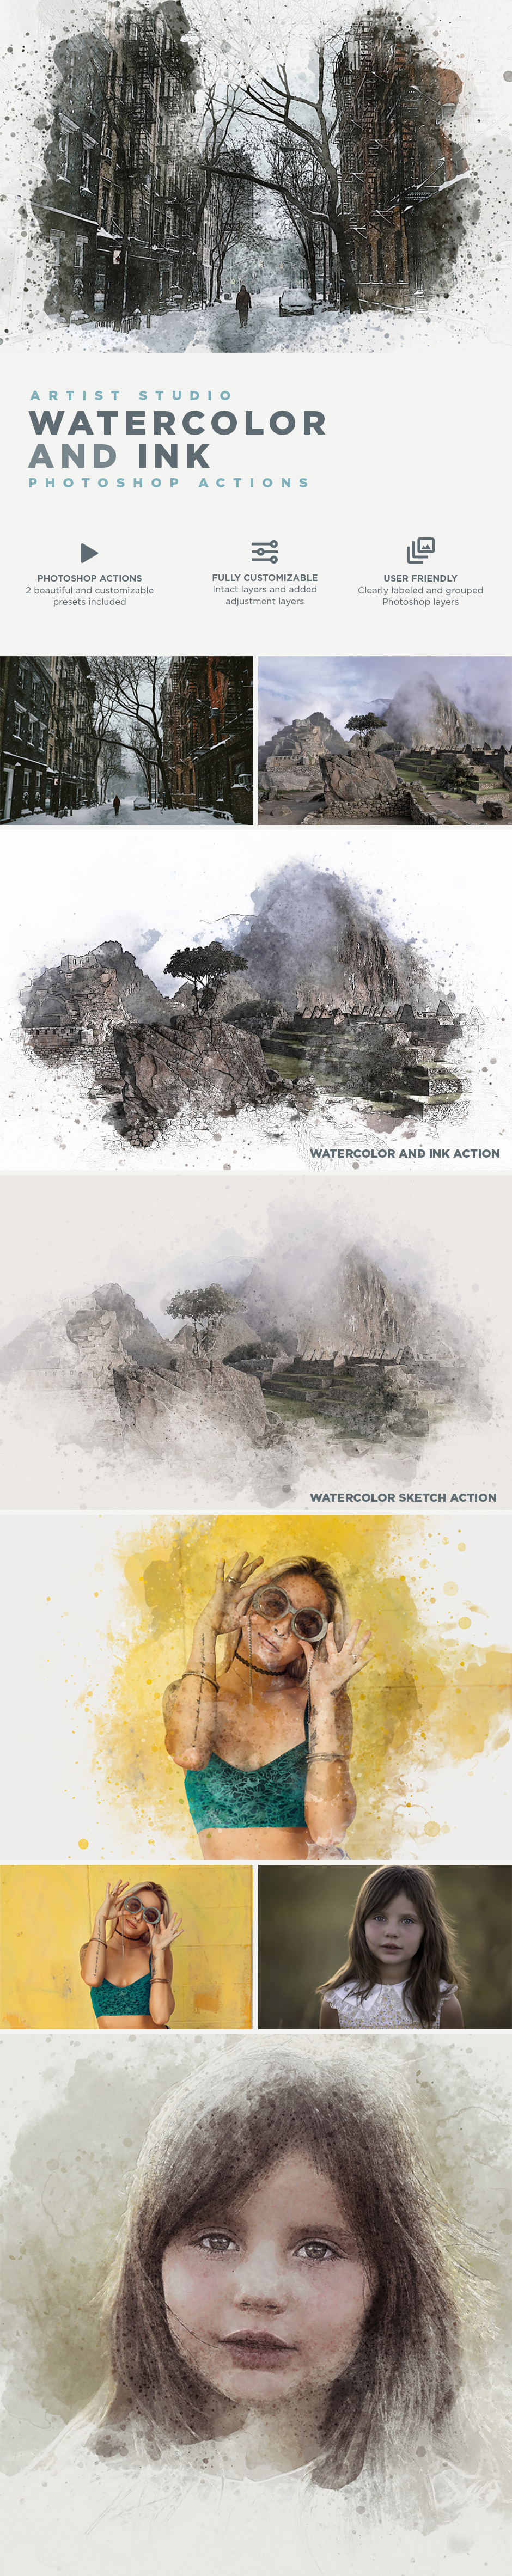 Artist Studio Watercolor Actions